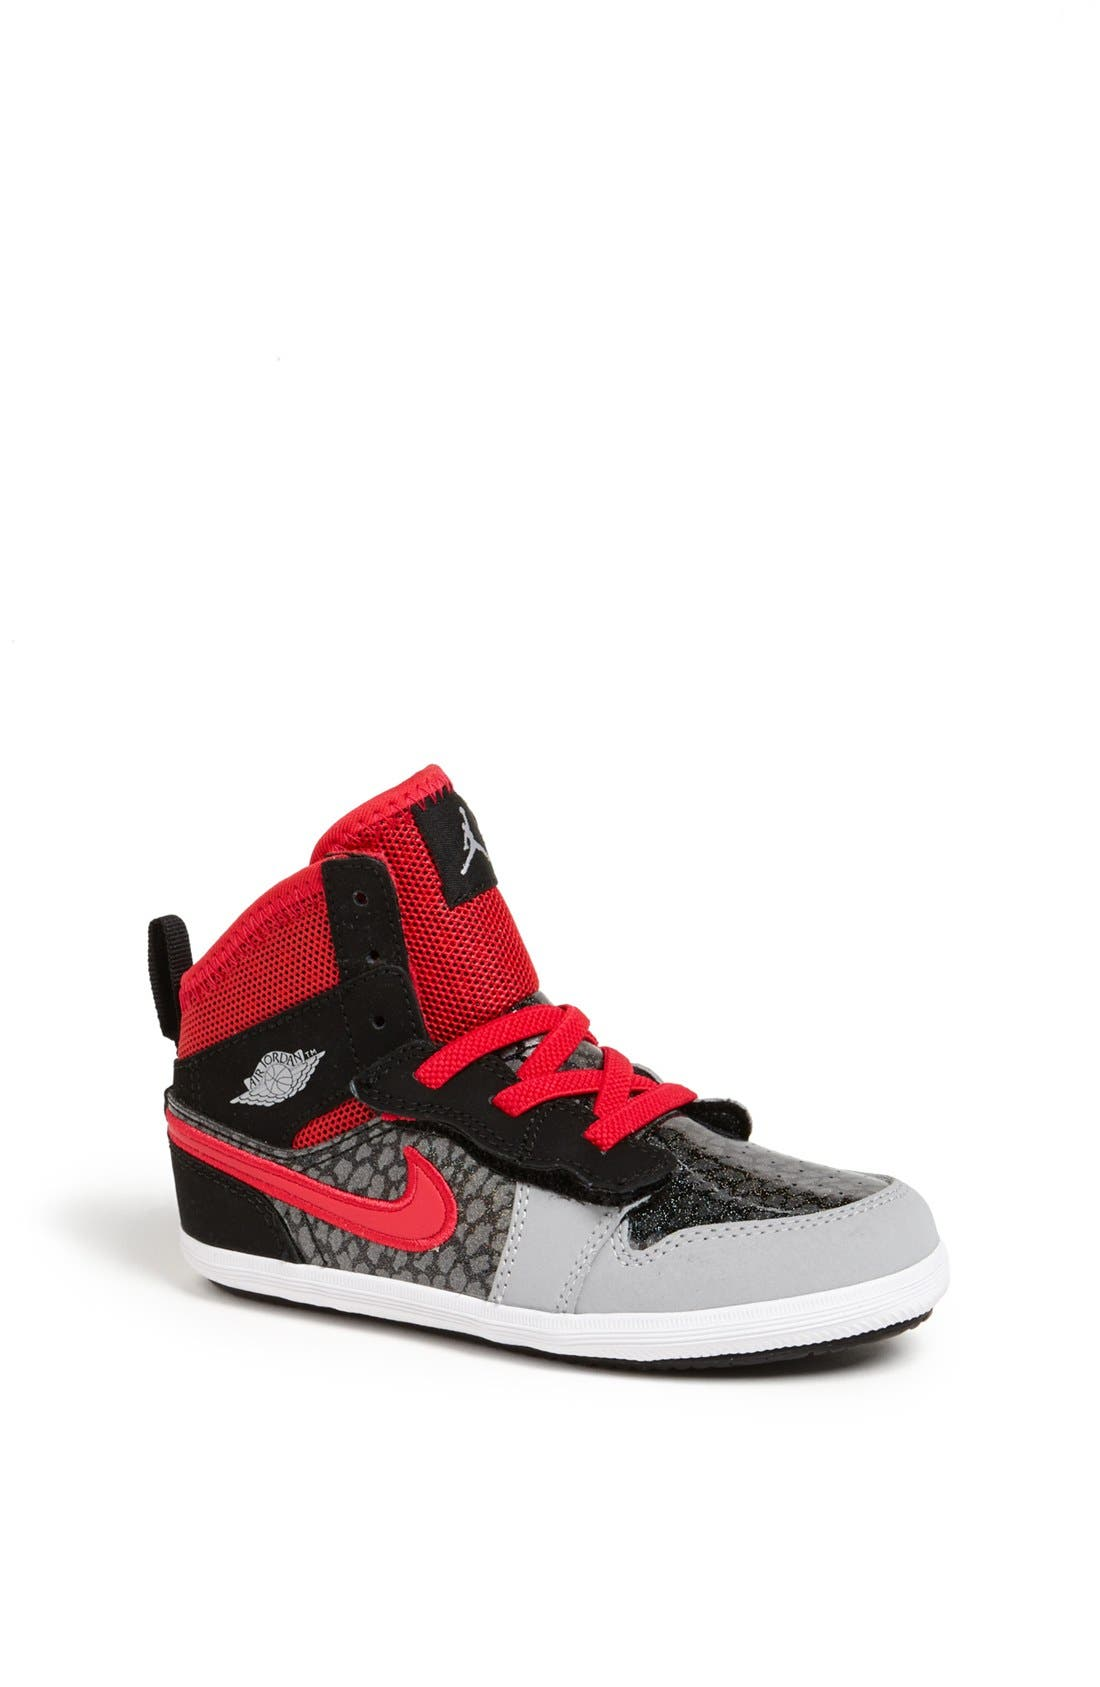 Main Image - Nike 'Jordan 1 Skinny High' Sneaker (Baby, Walker & Toddler)